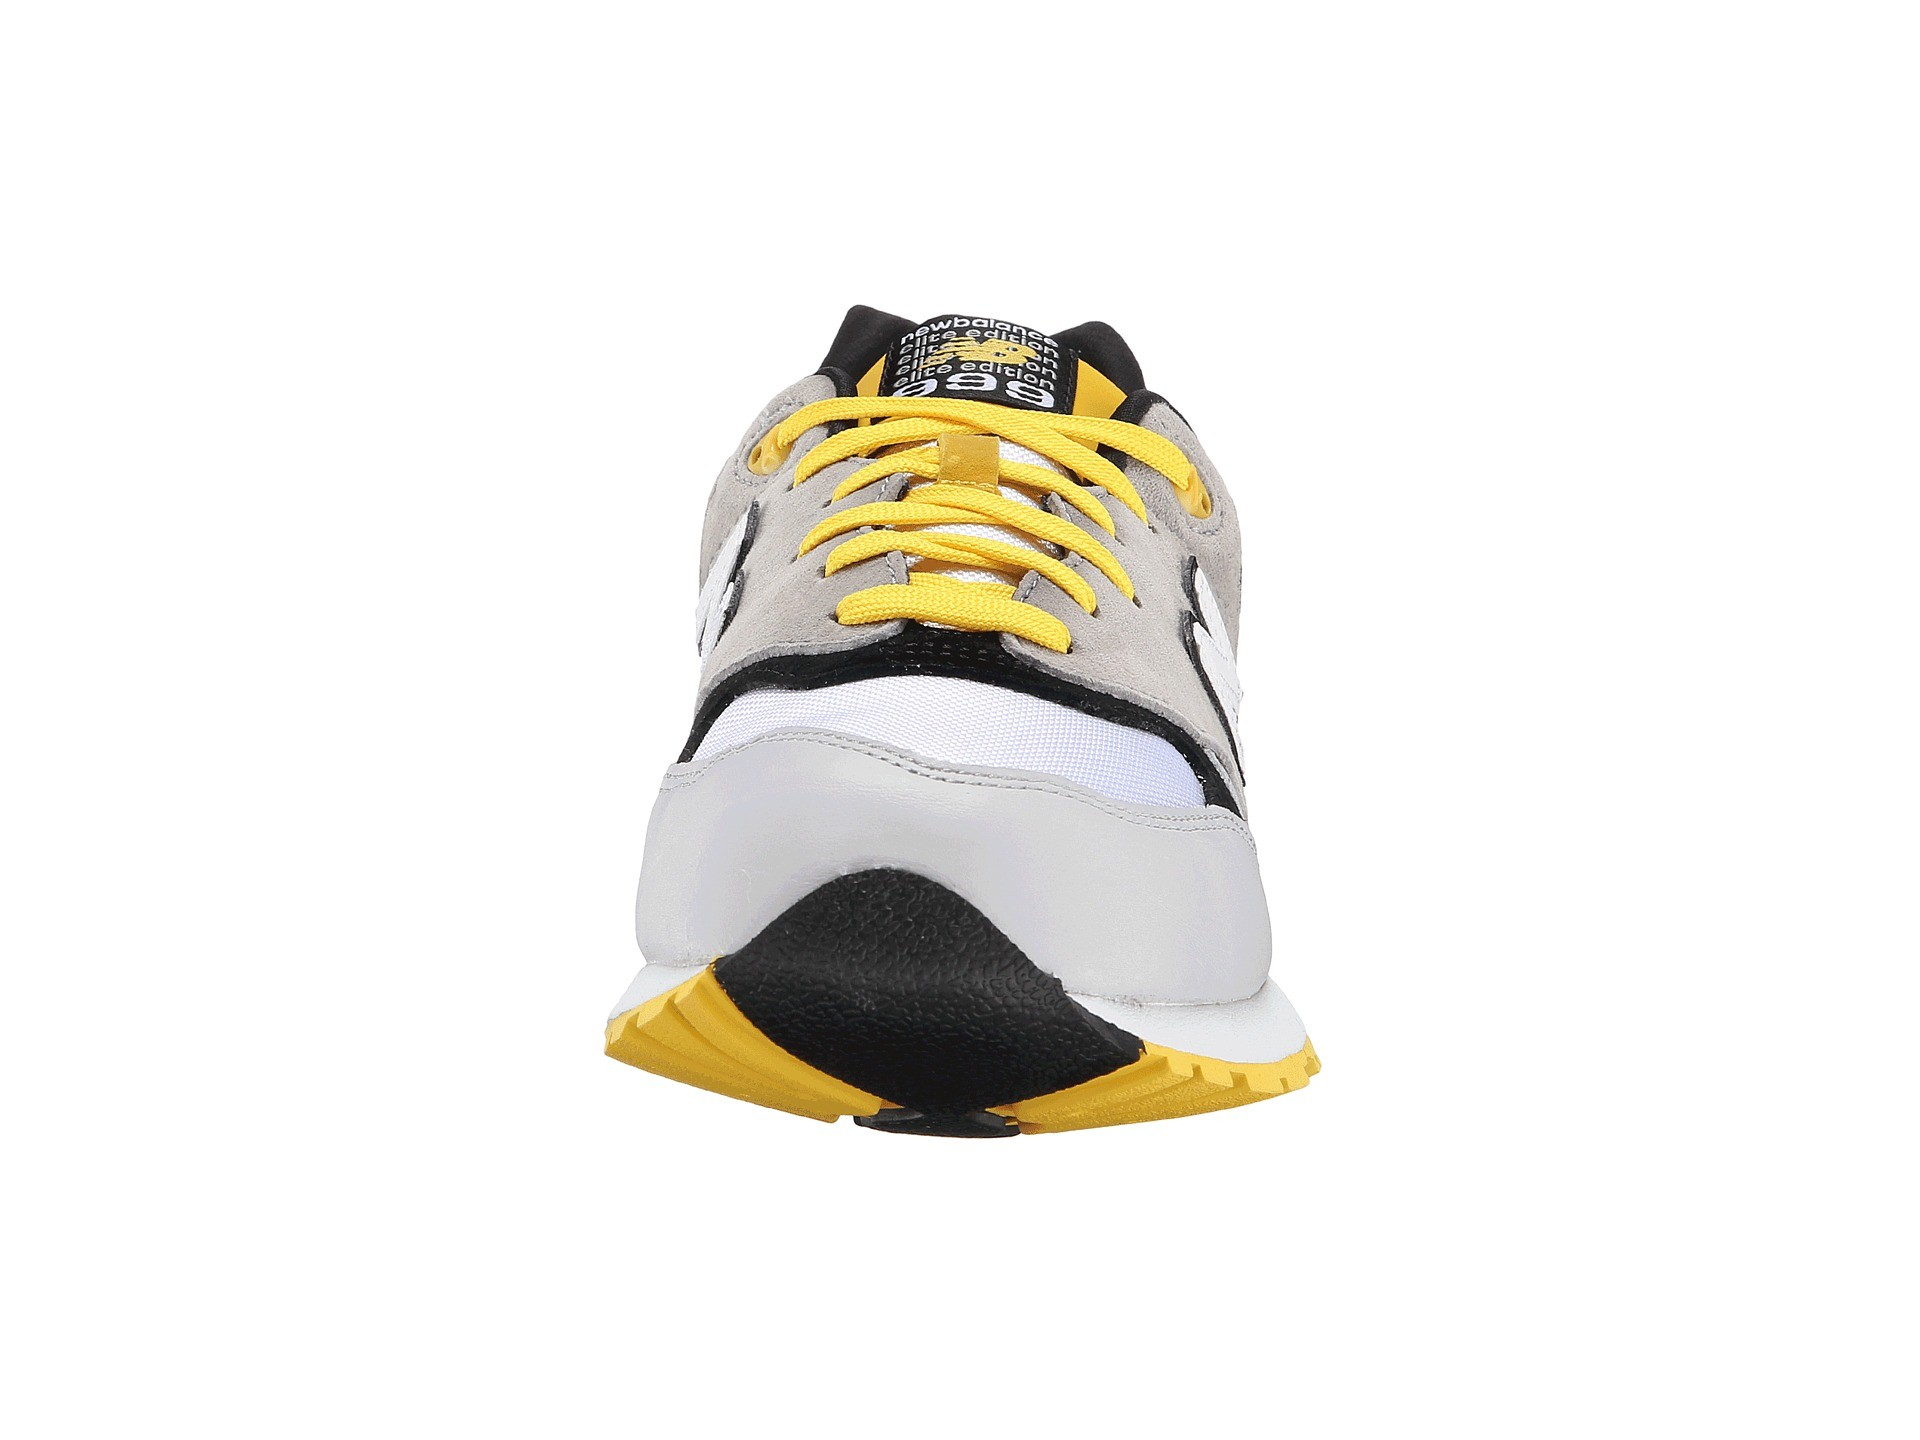 New Balance 999 Suede / Mesh Elite Edition Trainers For Men Grey Yellow White Black